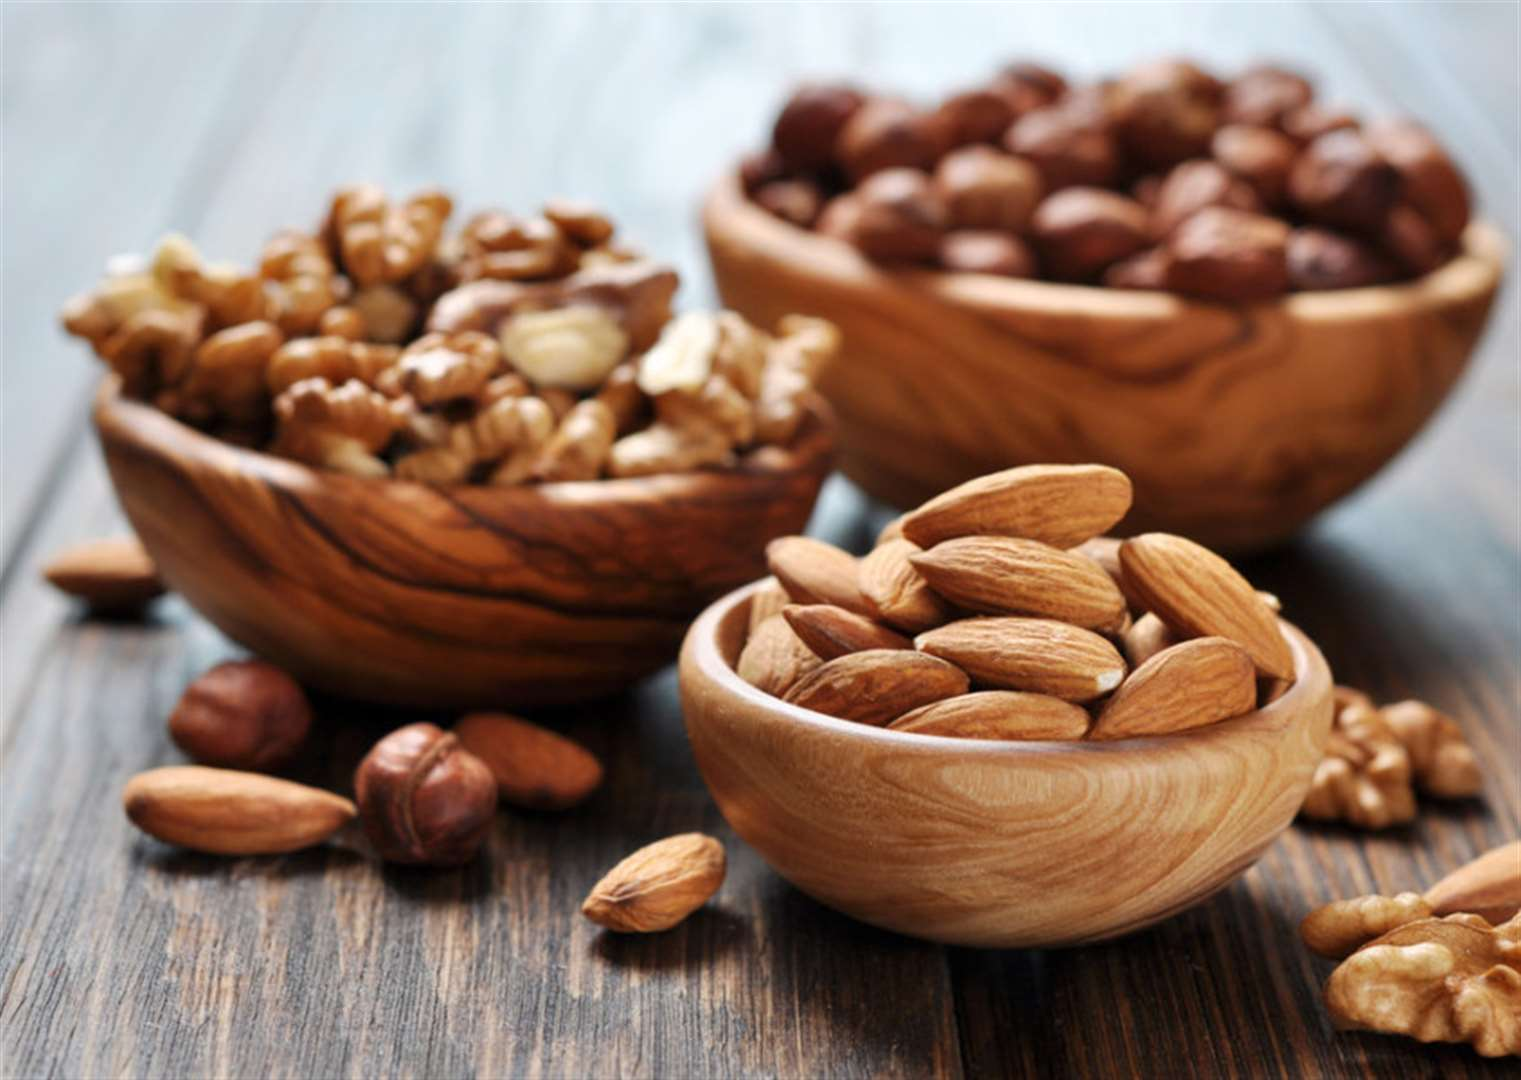 Scientists say nuts to heart disease